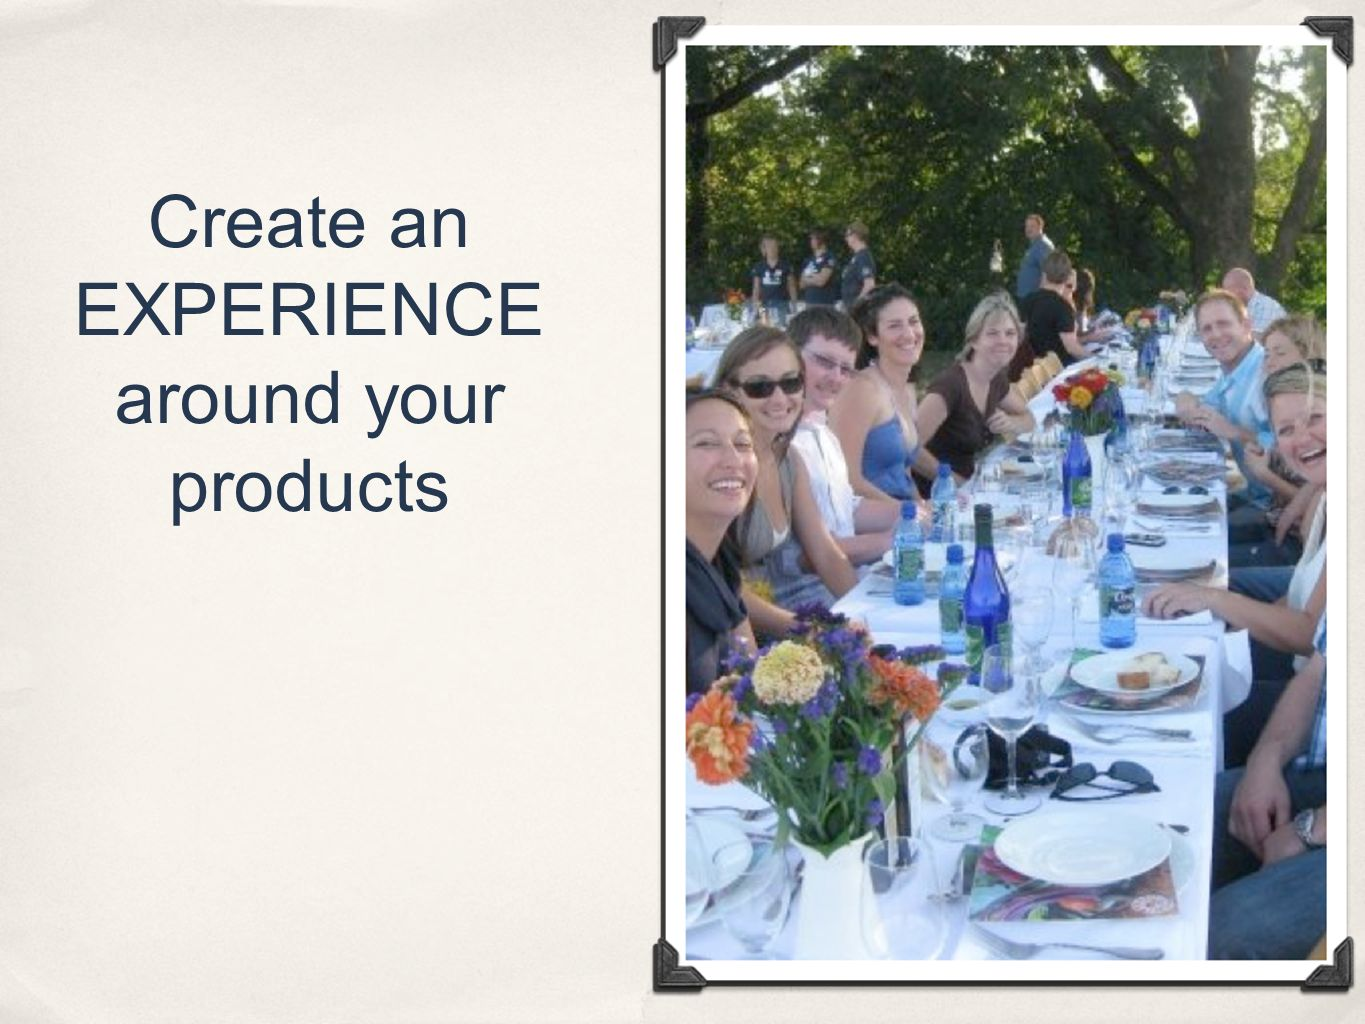 Create an EXPERIENCE around your products